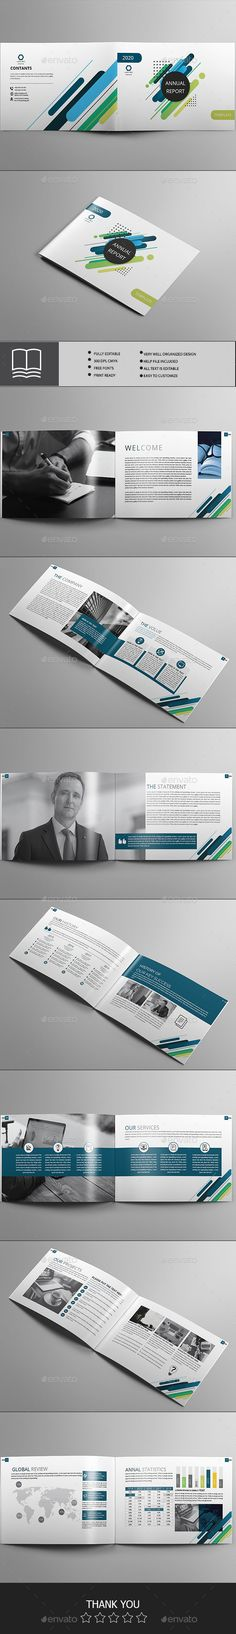 14 best inner page images on pinterest brochures catalog and annual report brochures print templates download here httpsgraphicriver fandeluxe Choice Image